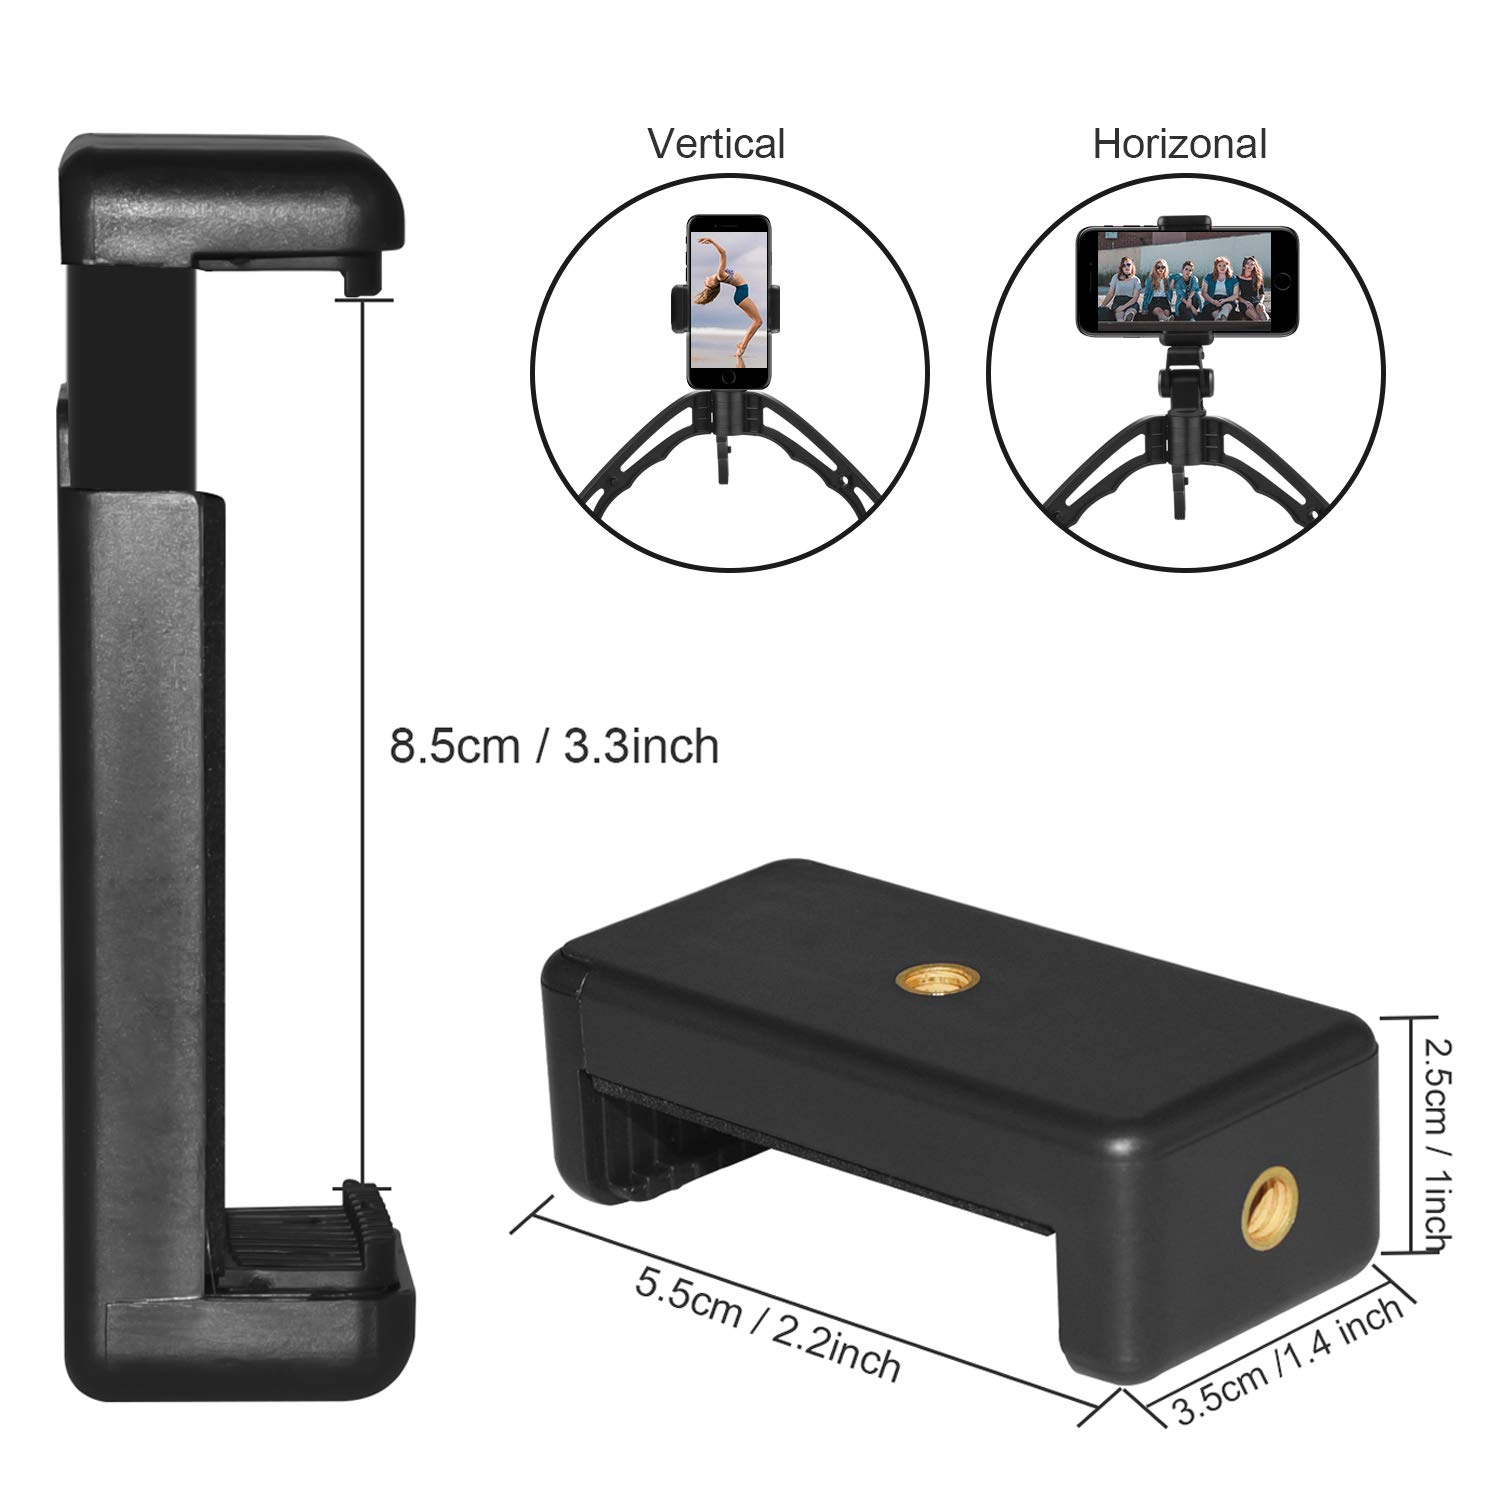 Sunvook Bluetooth Selfie Stick Tripod, Cell Phone Tripod, Camera Tripod, Mini lightweight Travel Tripod with Bluetooth Remote 2 in 1 Pistol Grip Suitable for IOS Andriod Phones iPhone Samsung etc